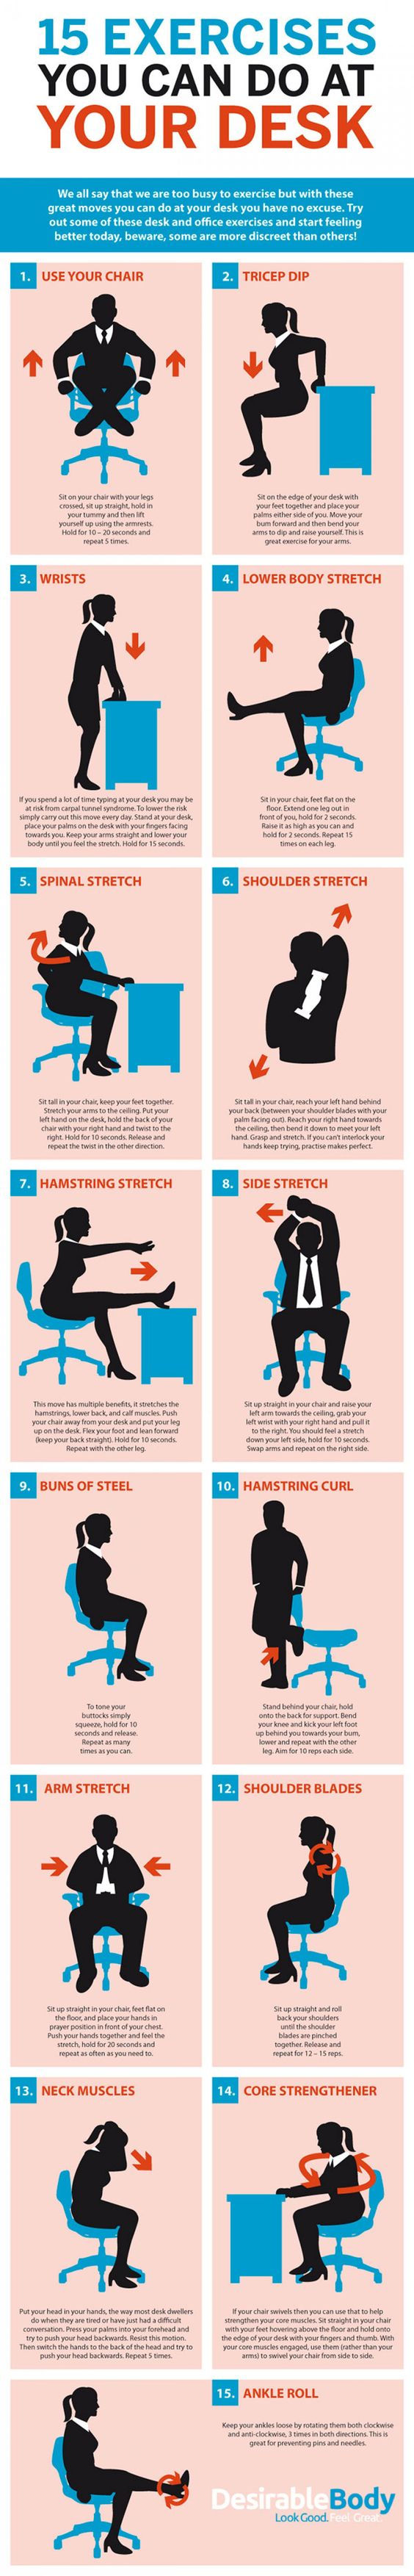 office exercises how to infographic